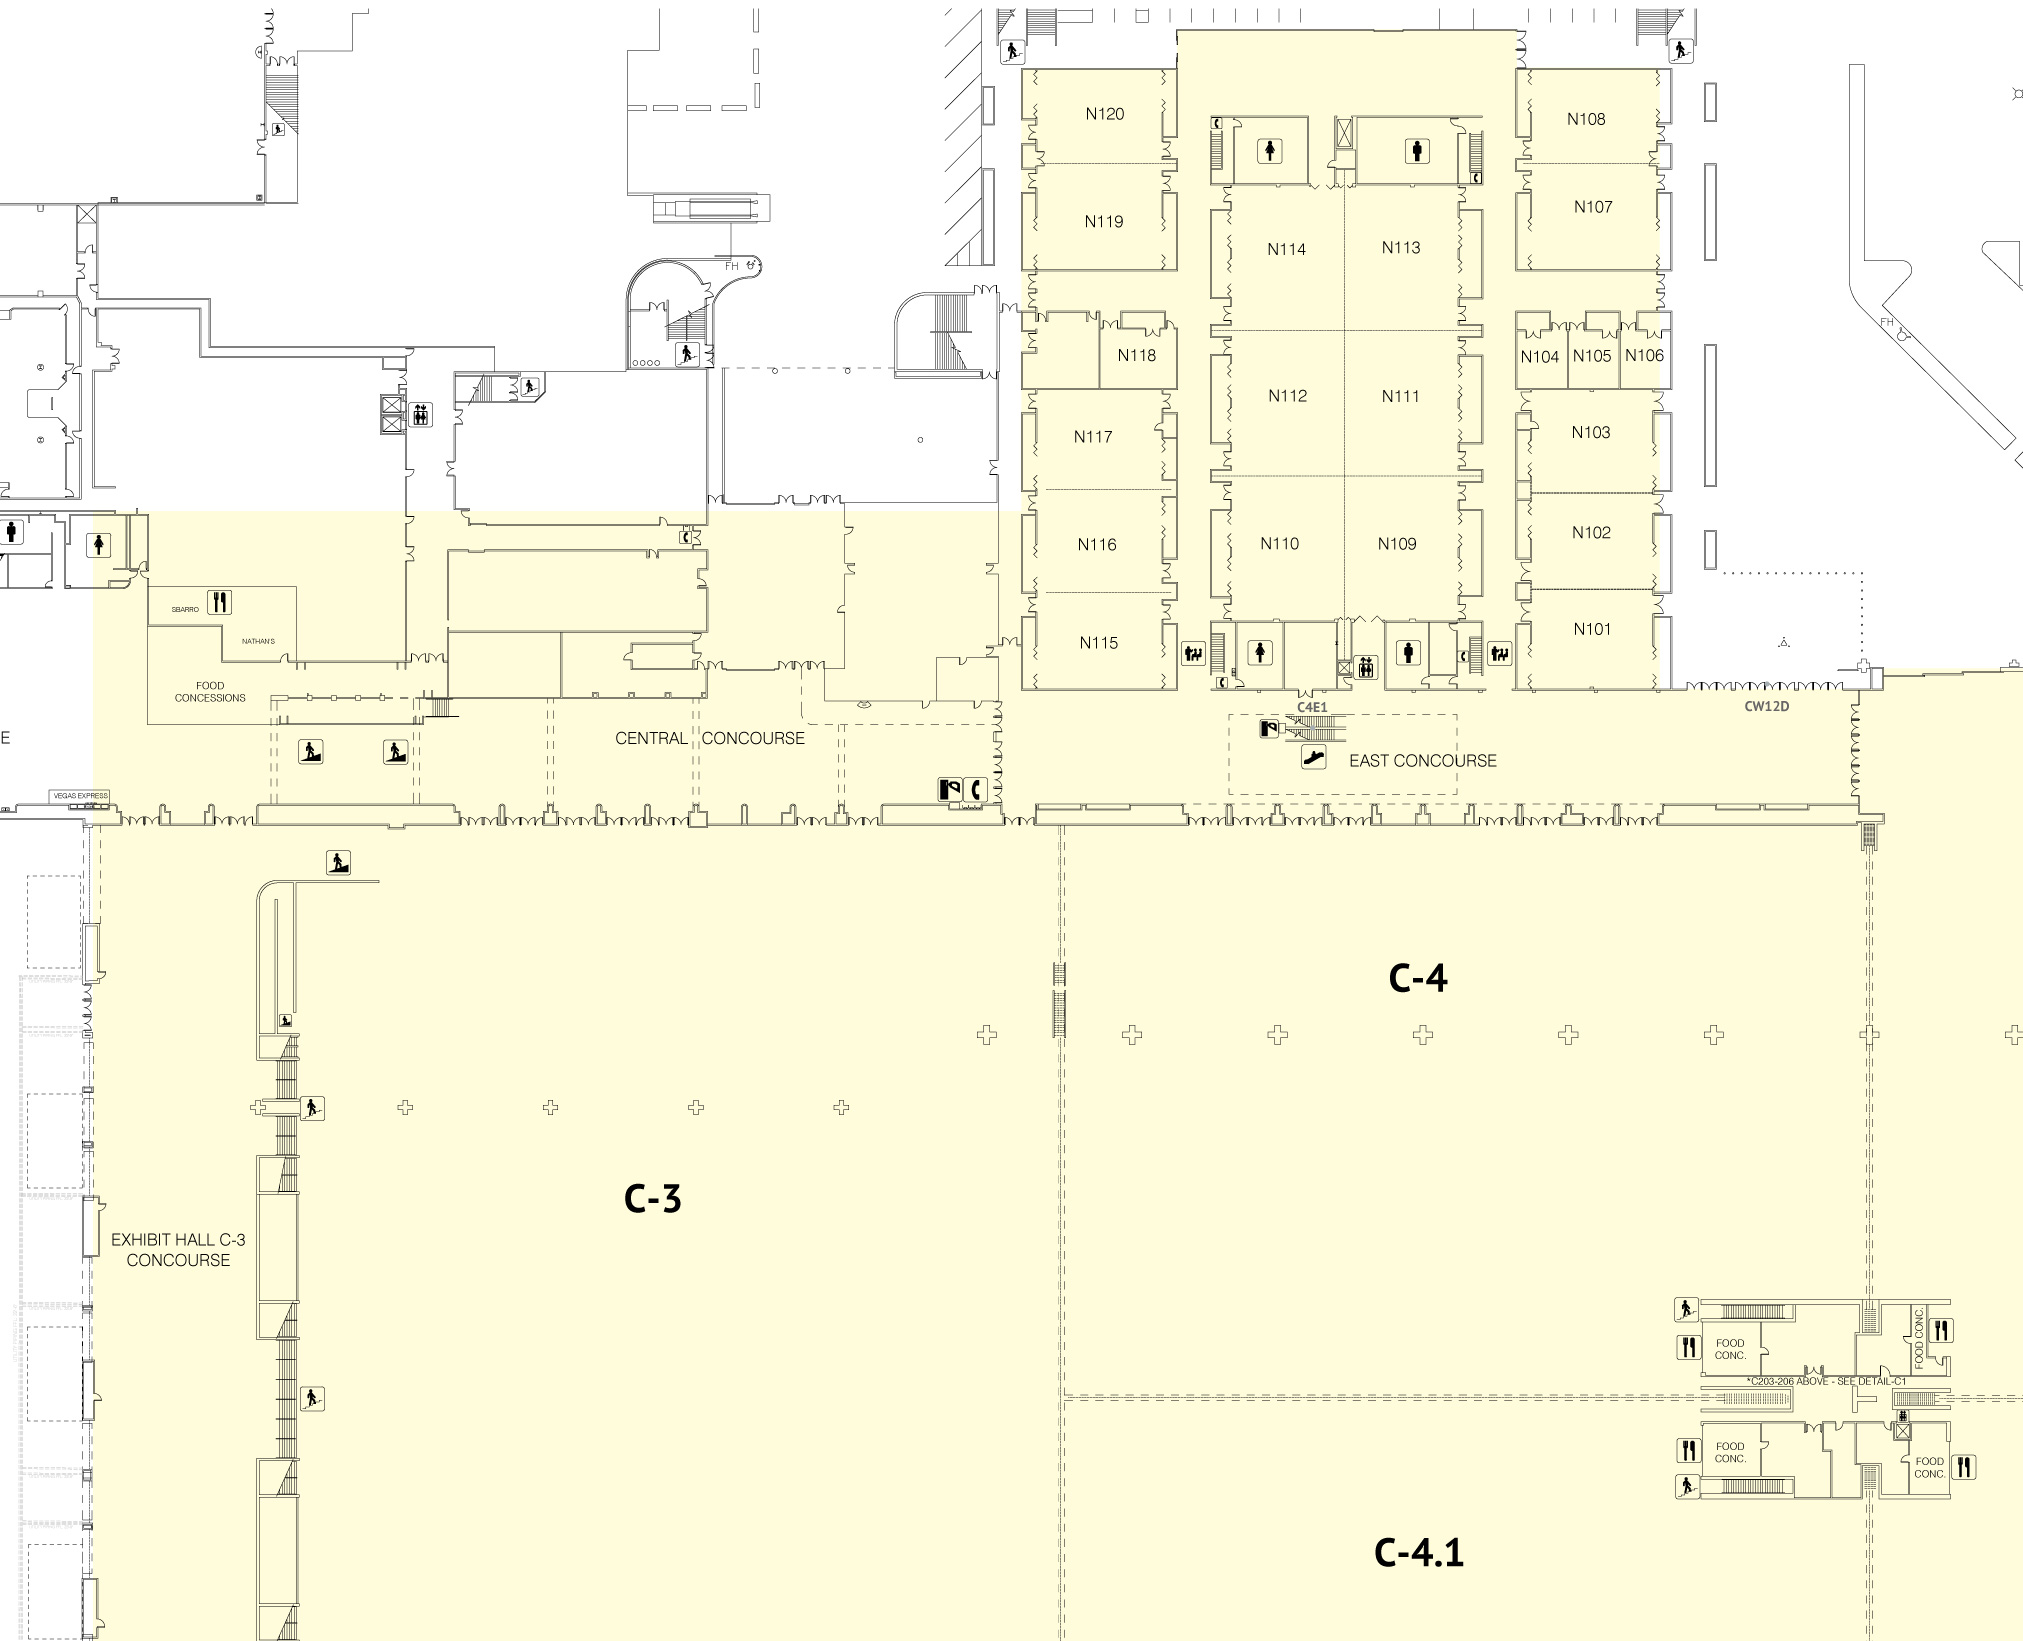 Las Vegas Convention Center Map